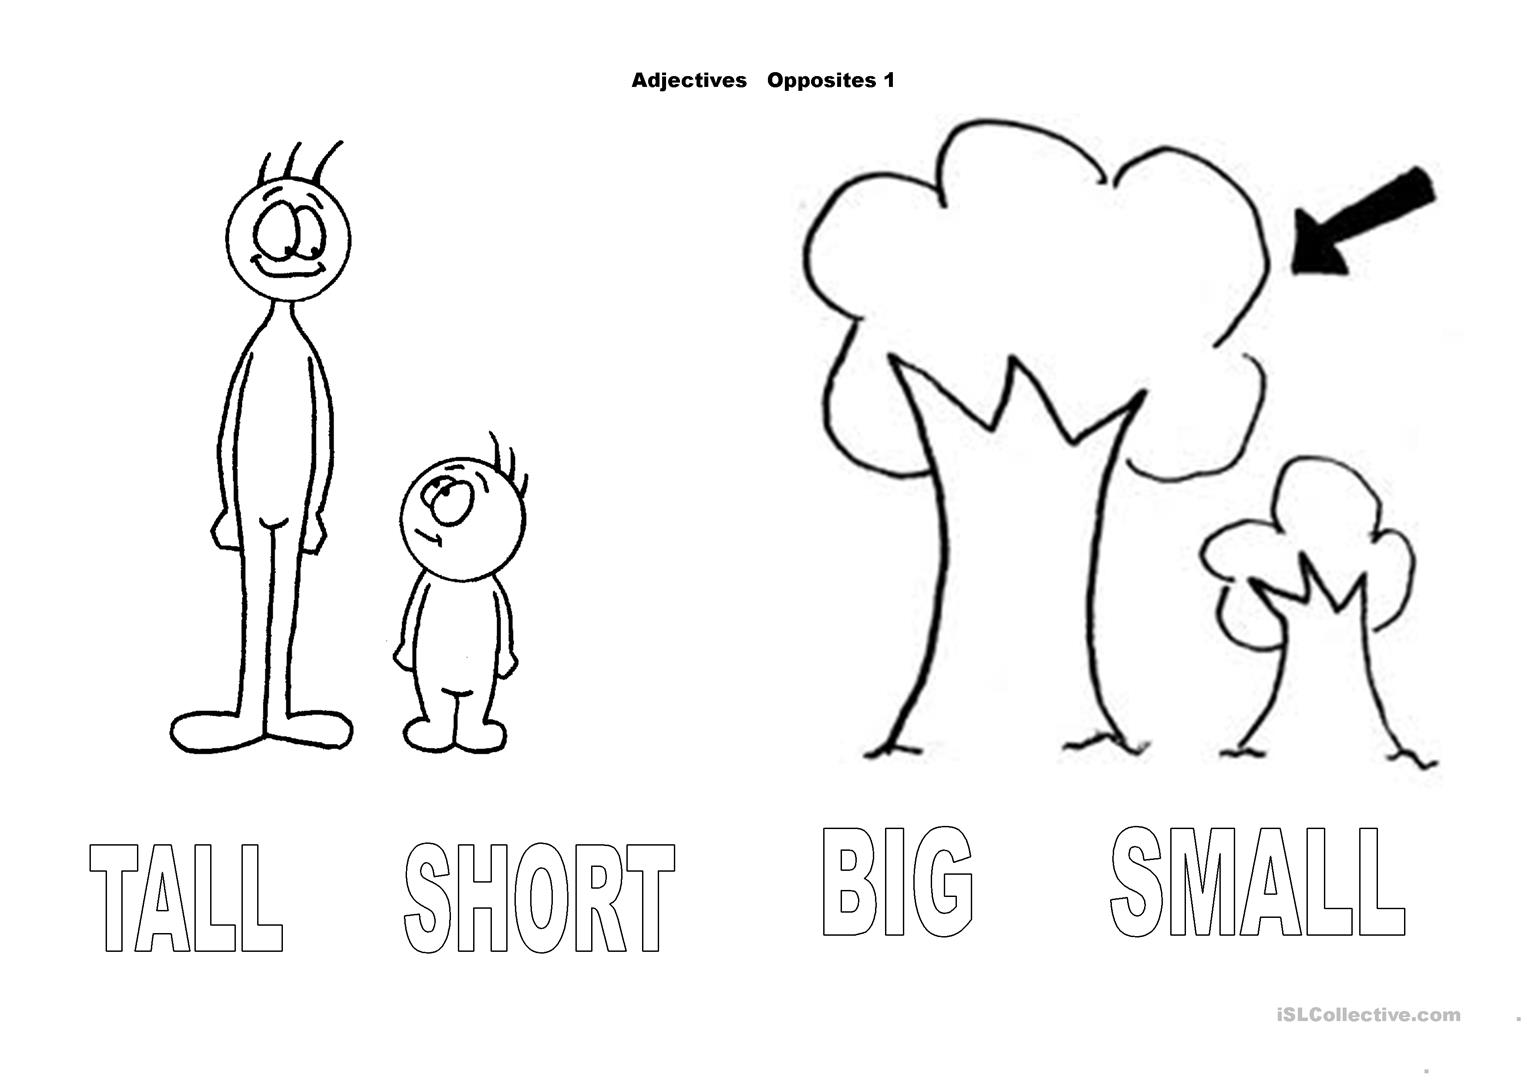 Adjectives Opposites 1